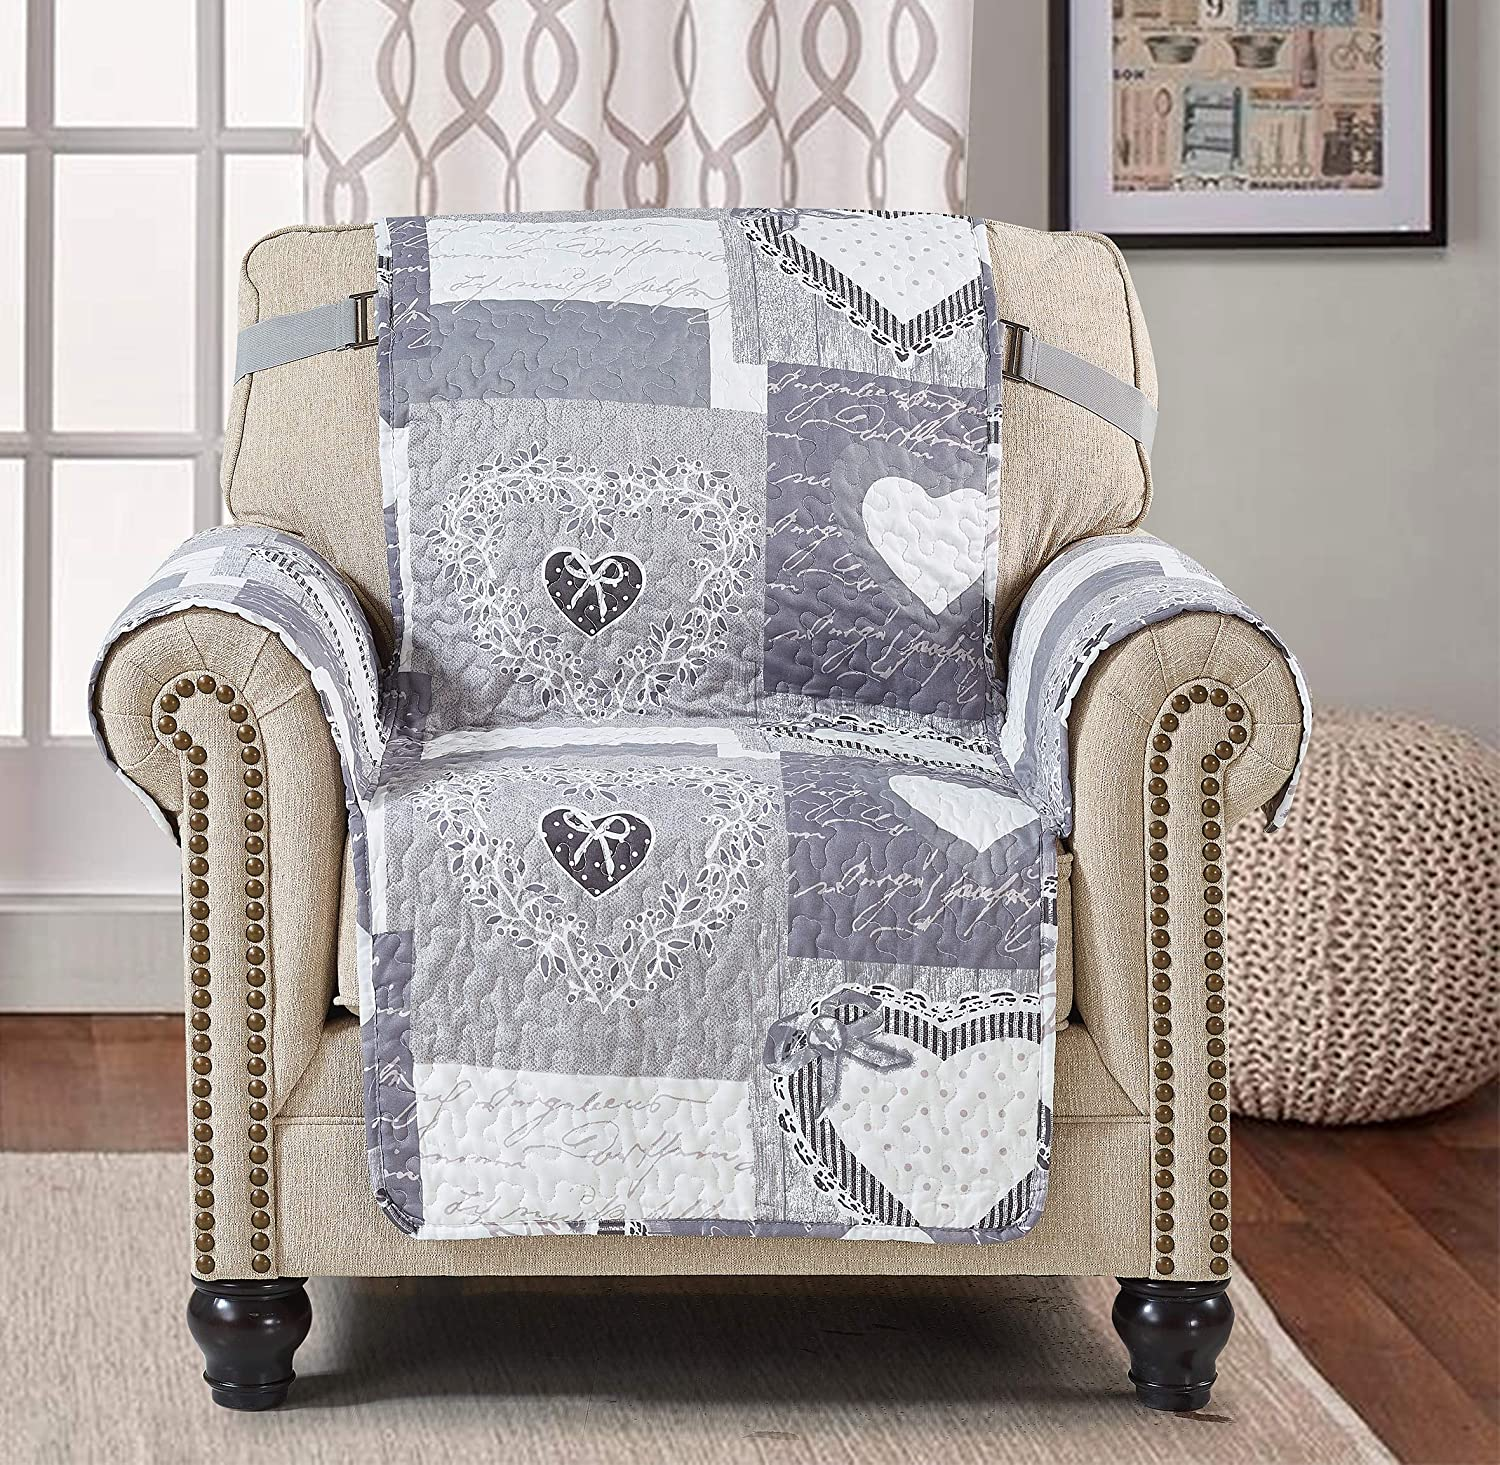 Sofa Chair Protector 23 Inch Patchwork Pet Proof Furniture Cover for Living Room Heart Love Print Reversible Quilted Scroll, Enhanced Strap, Machine Wash Arm Chair Slip Cover Not Leather, Grey/White